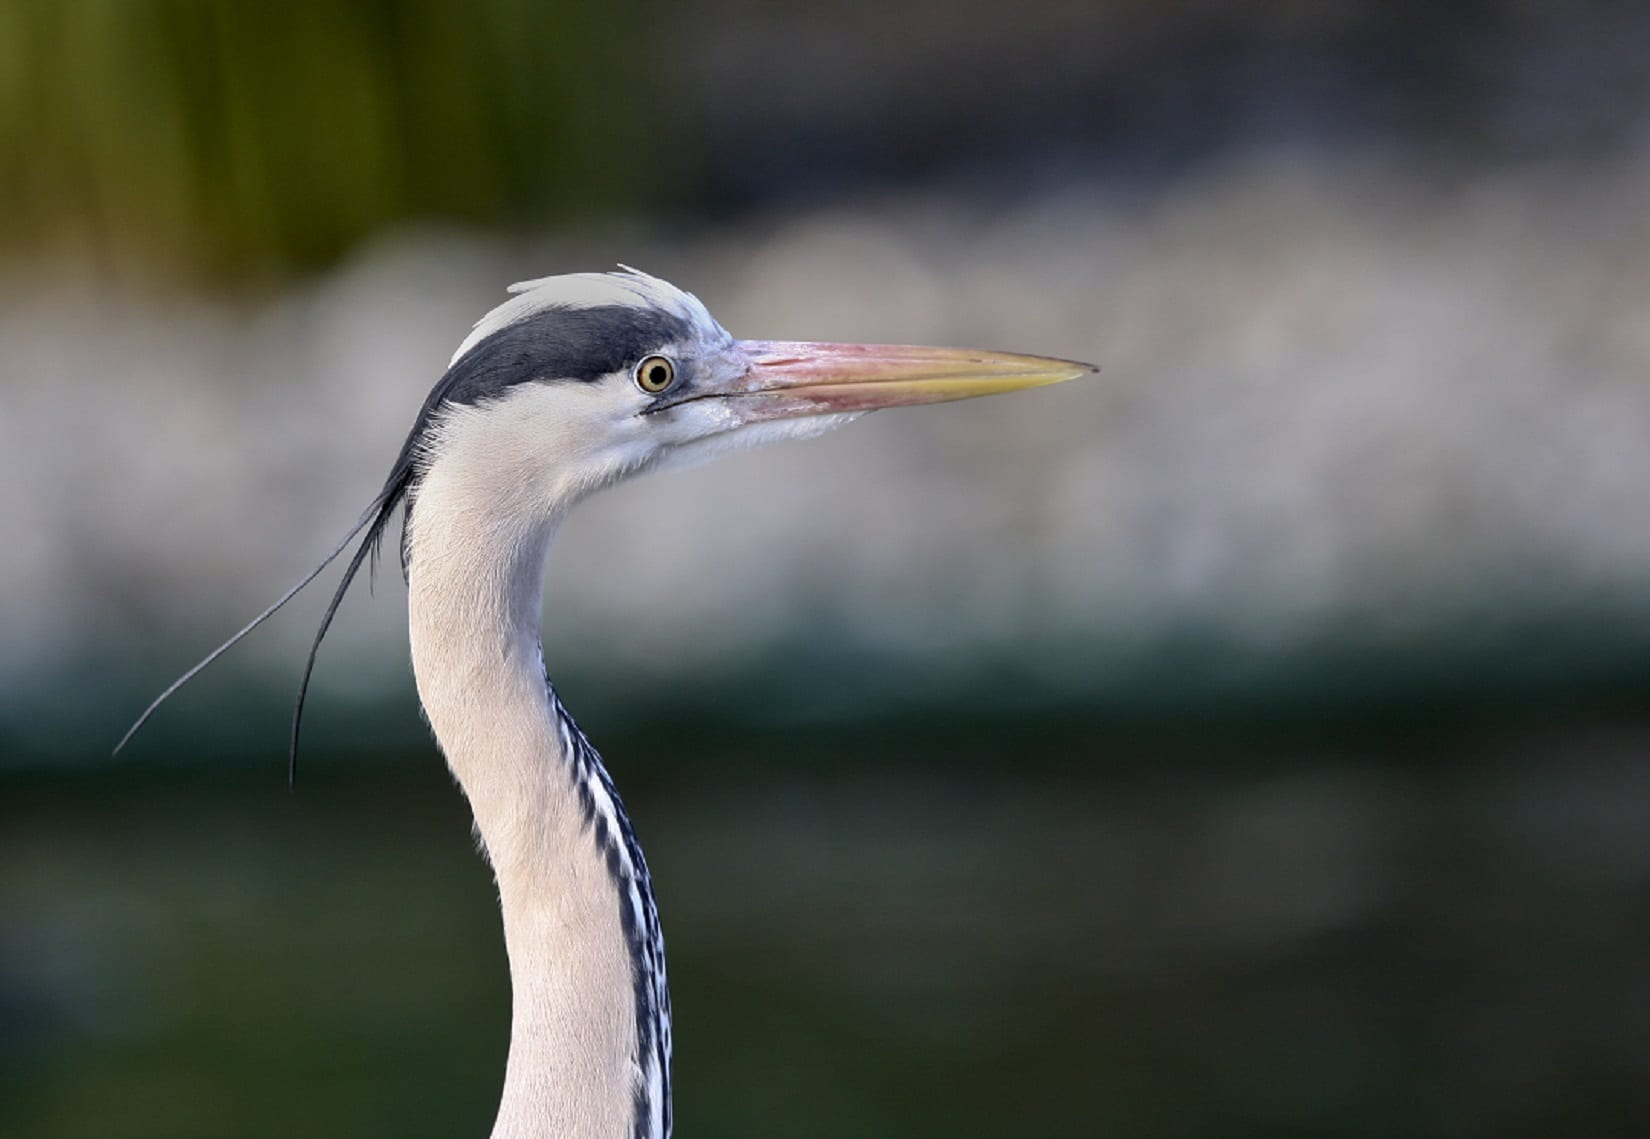 grey-heron-close-up-side-profile-of-head